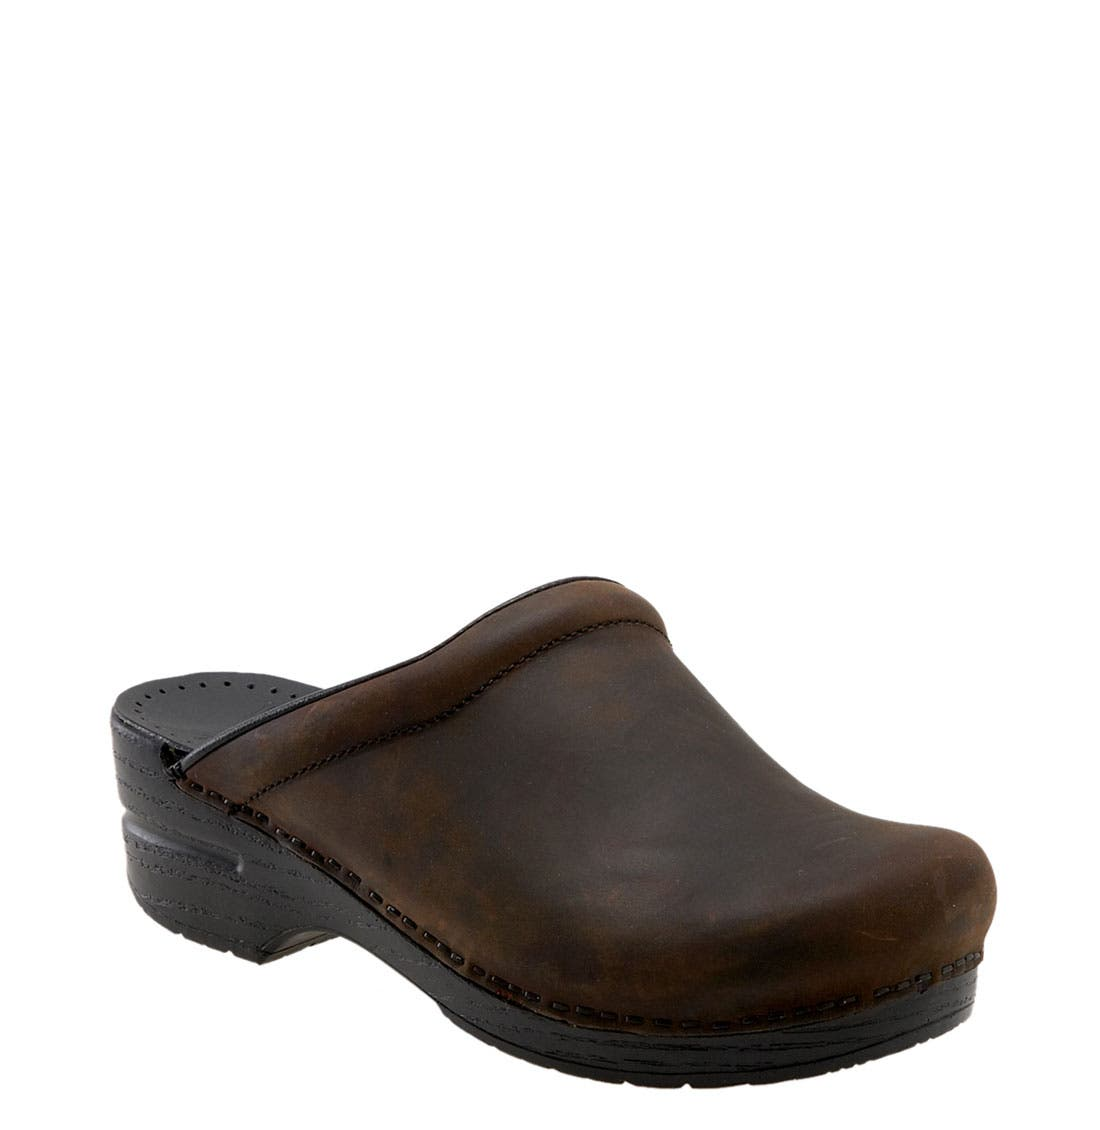 'Sonja' Oiled Leather Clog,                             Main thumbnail 1, color,                             ANTIQUE BROWN OILED